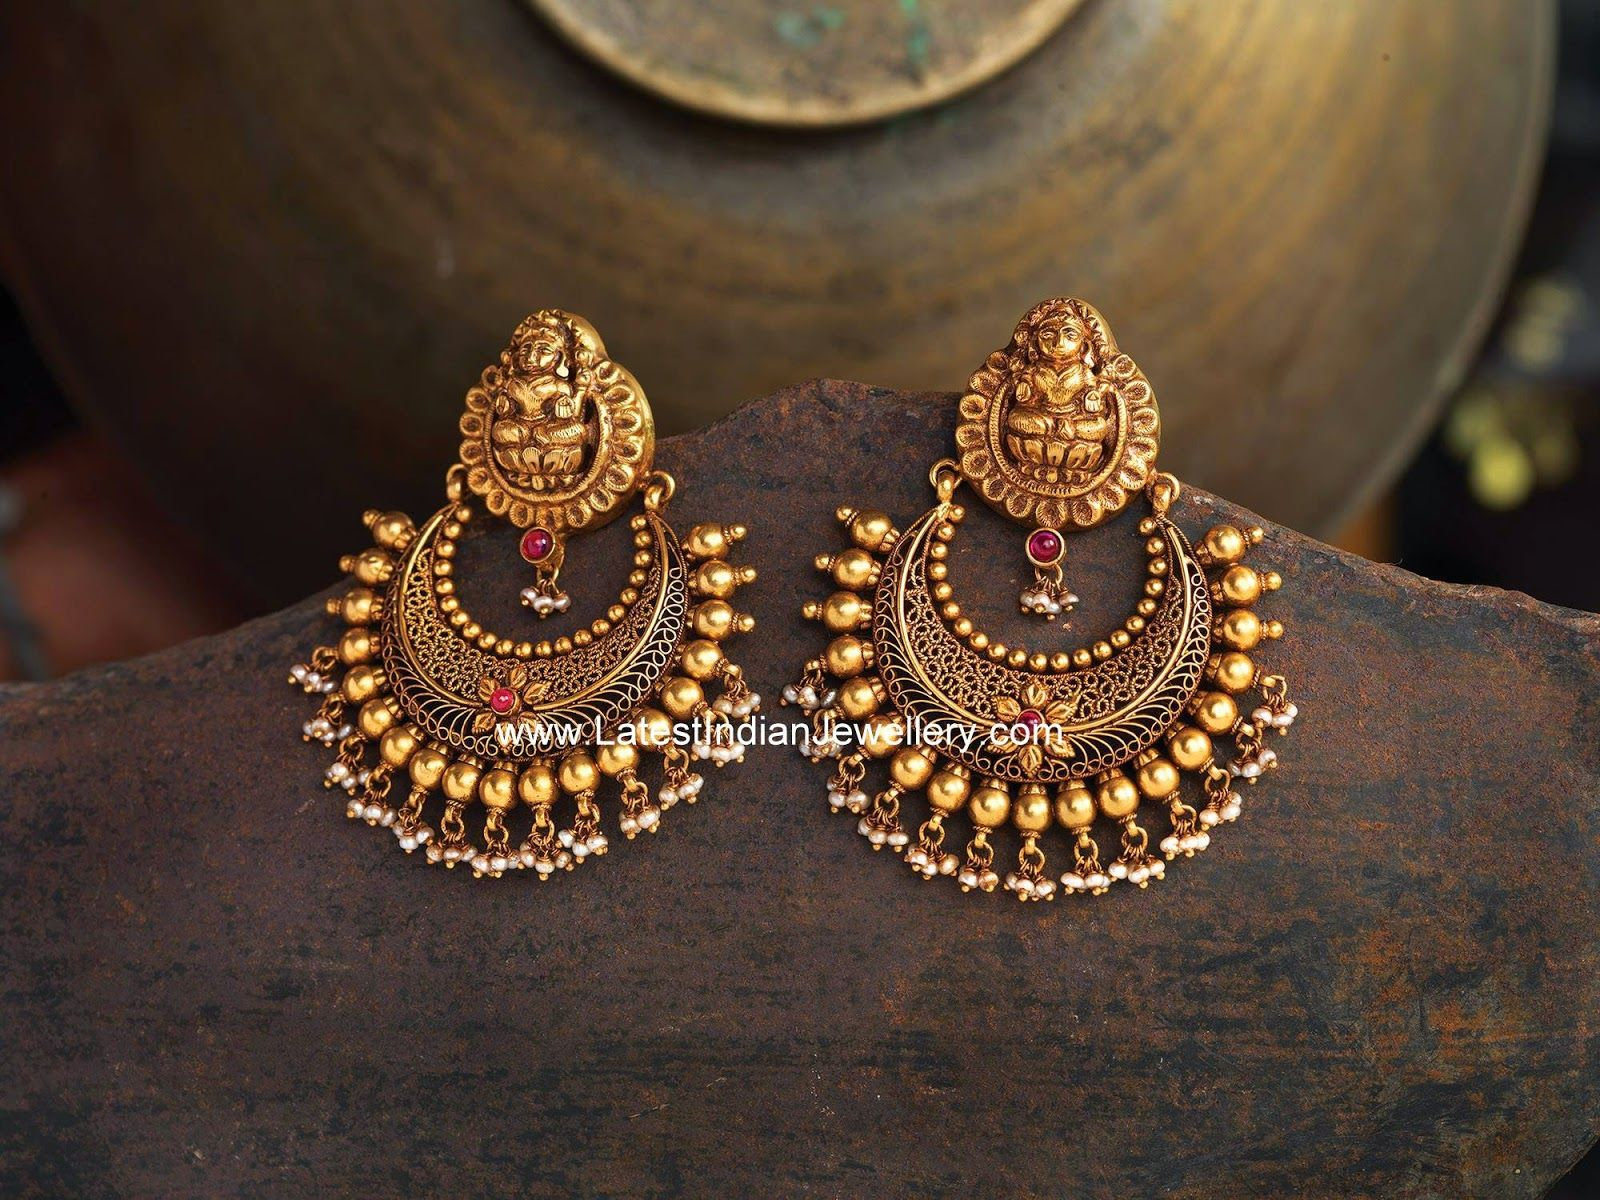 Lakshmi Design Antique Gold Chand Bali Jewelry Jewelry Antique